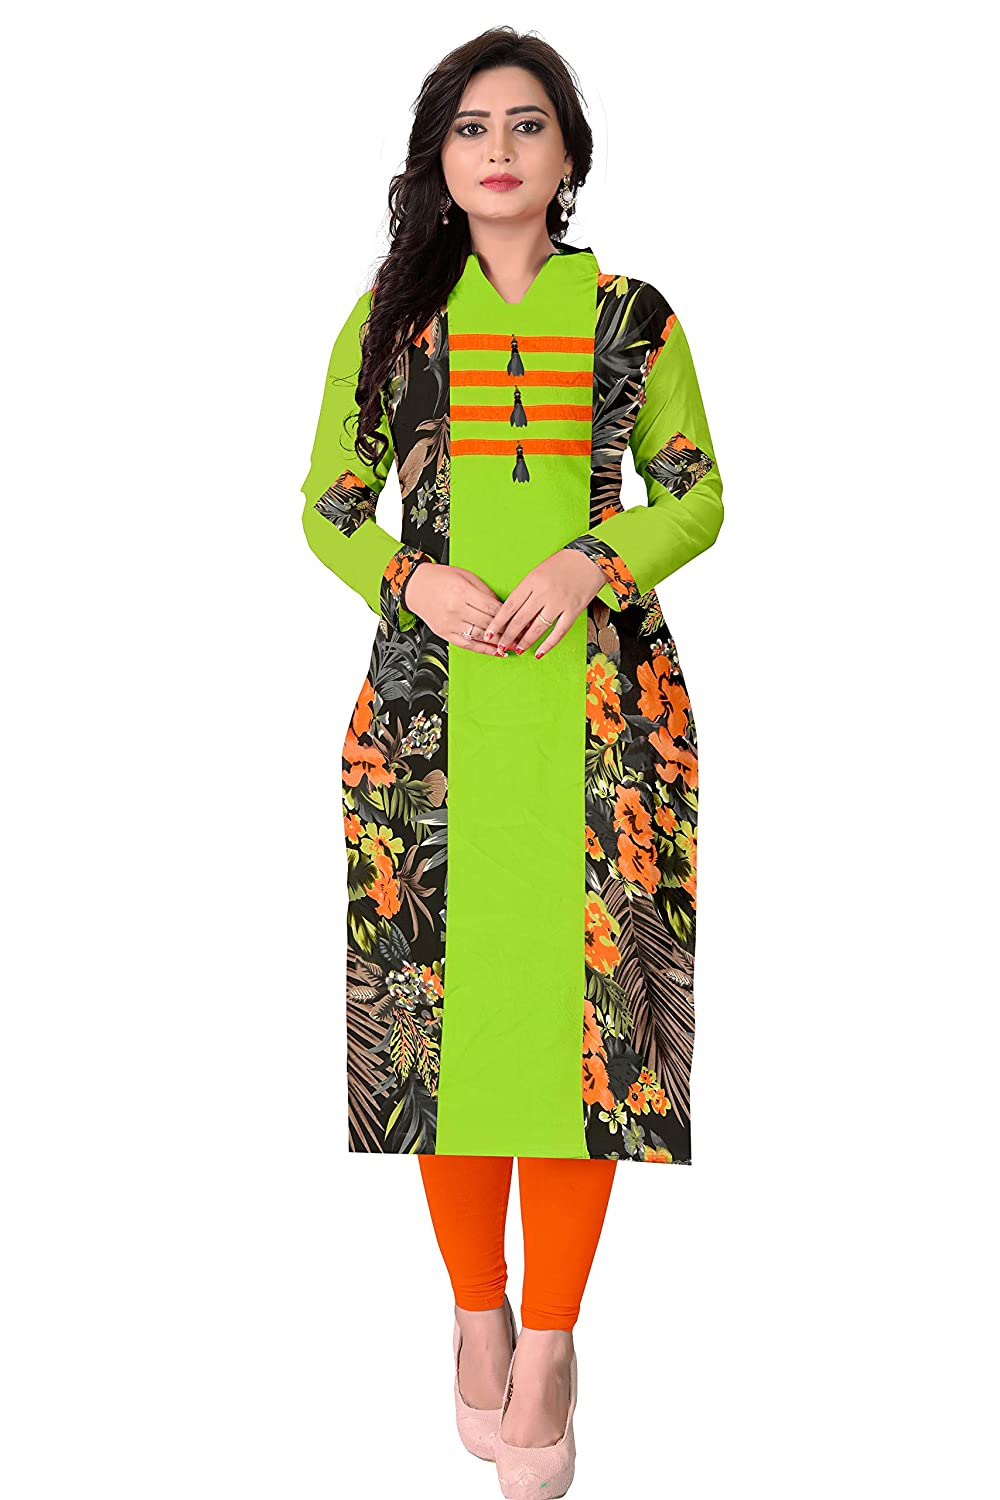 cd92fc3bbd45 Pramukh Fashion Women's Cotton Semi-stitched Kurtis (1132 1019,  Multicolour, Free Size) - Combo Pack of 2: Amazon.in: Clothing & Accessories